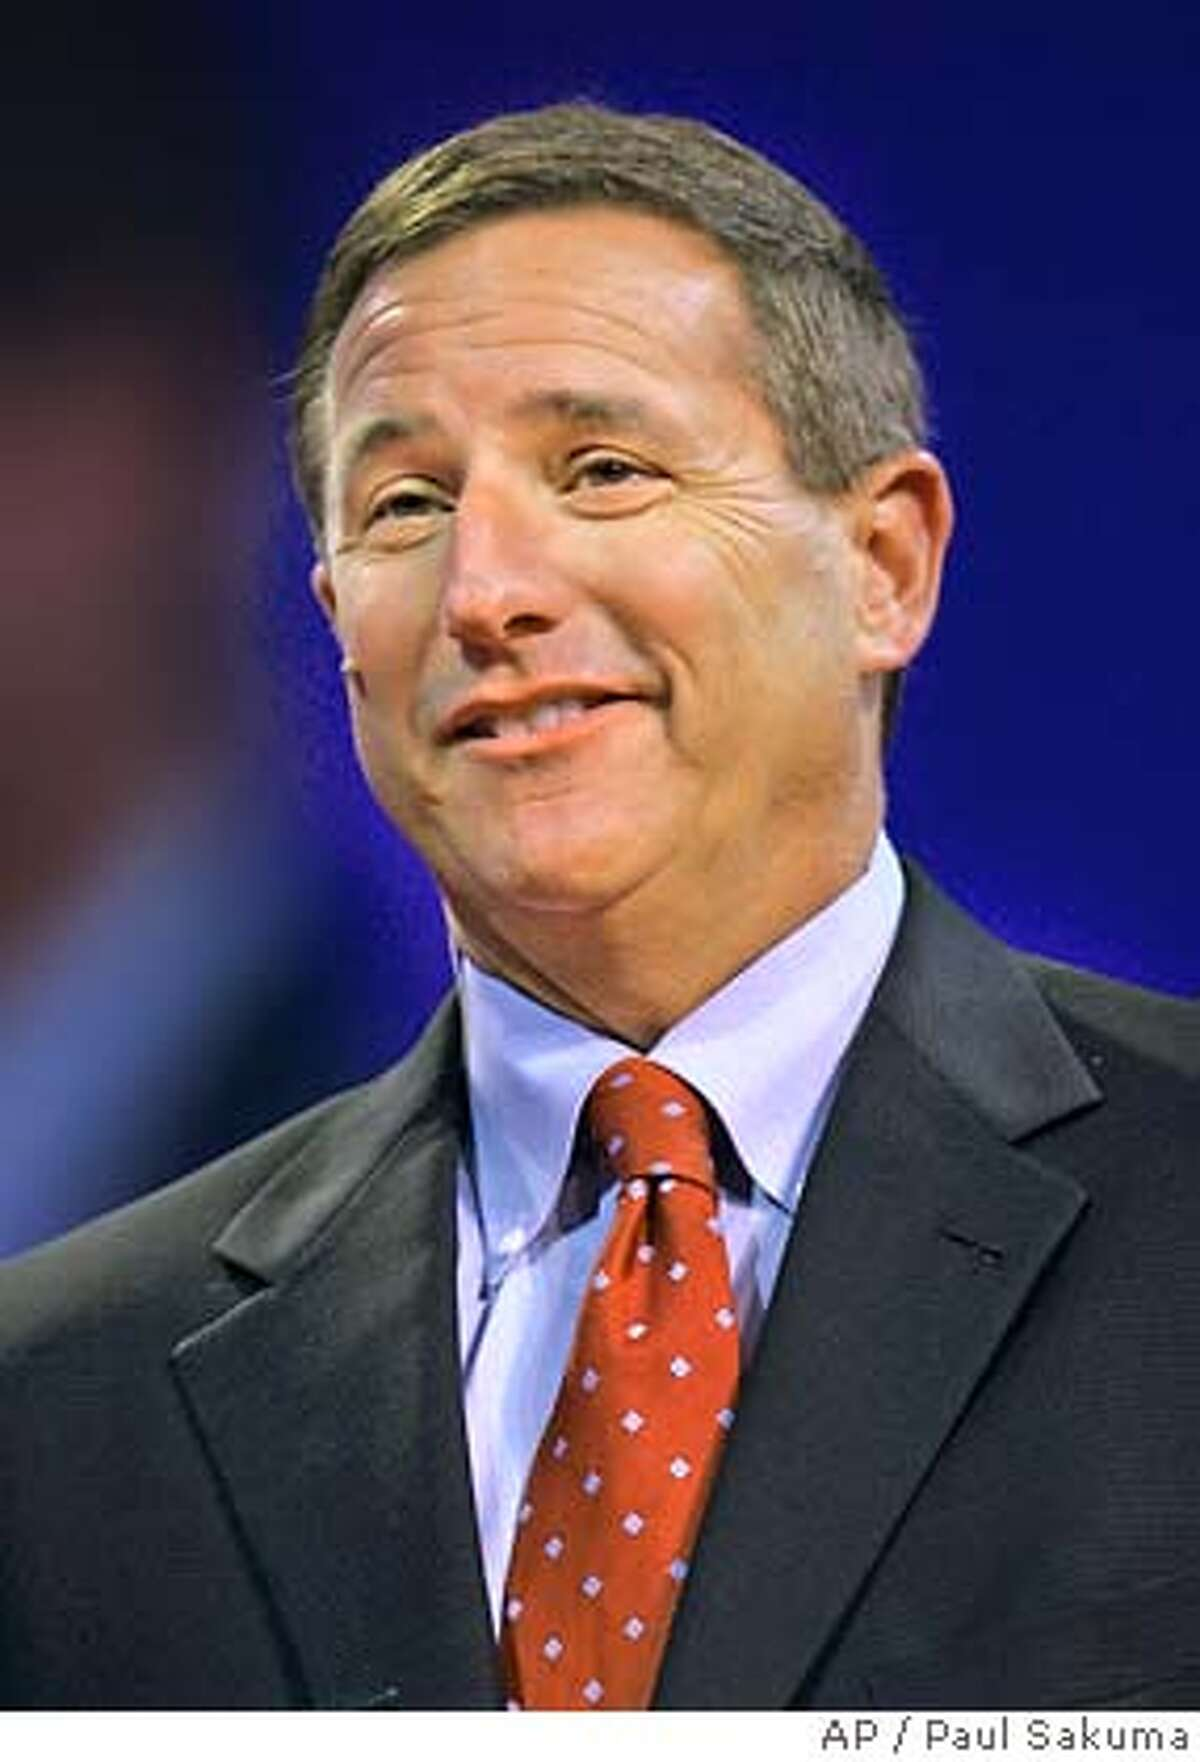 Hewlett Packard CEO Mark Hurd smiles during a keynote address at Oracle World conference in San Francisco, Tuesday, Oct. 24, 2006. Hewlett-Packard Co.'s first-quarter profit jumped 26 percent as the company benefited from higher sales of laptop computers, printers and printing supplies during a robust holiday spending season. (AP Photo/Paul Sakuma)